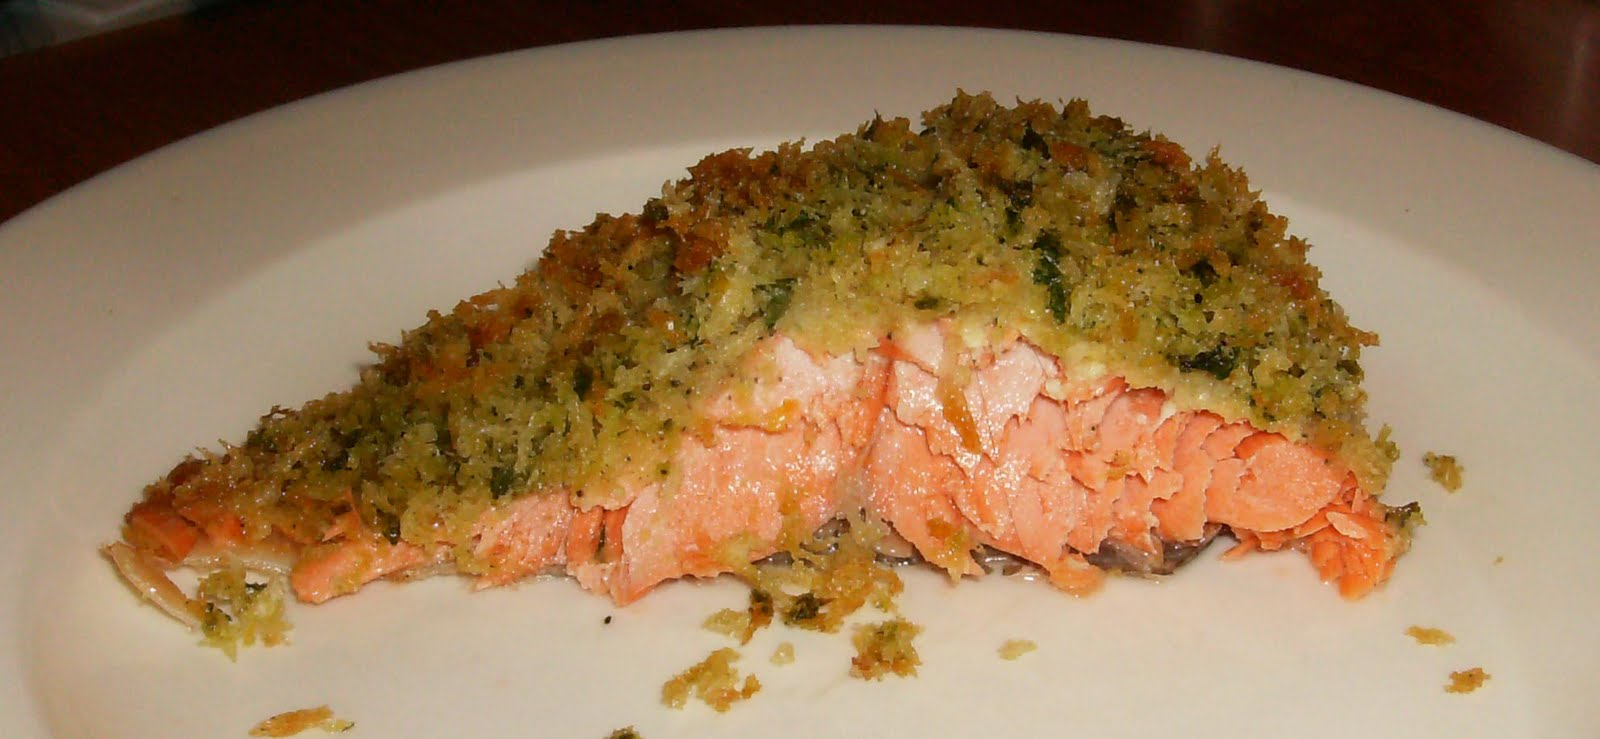 In a World of My Own: Panko-Crusted Salmon